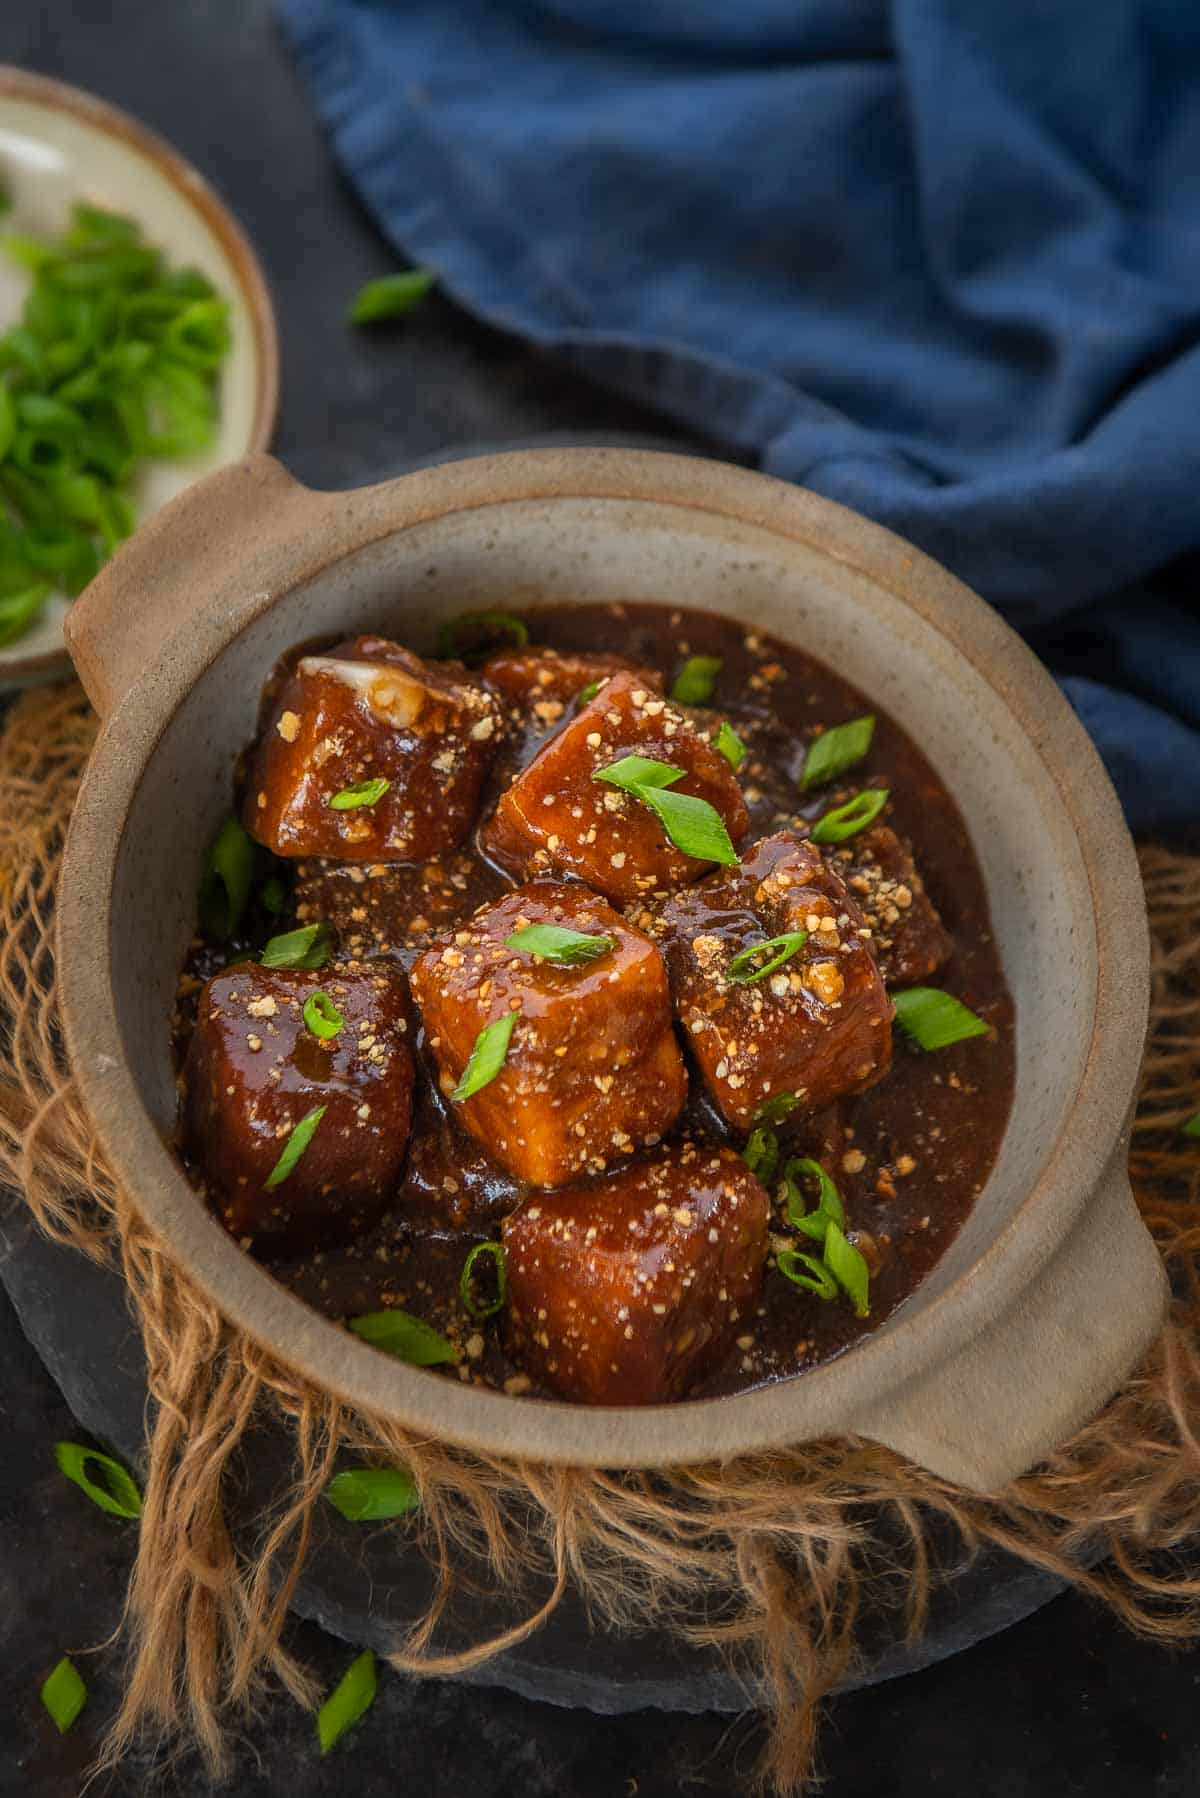 General Tso's Tofu served in a bowl.